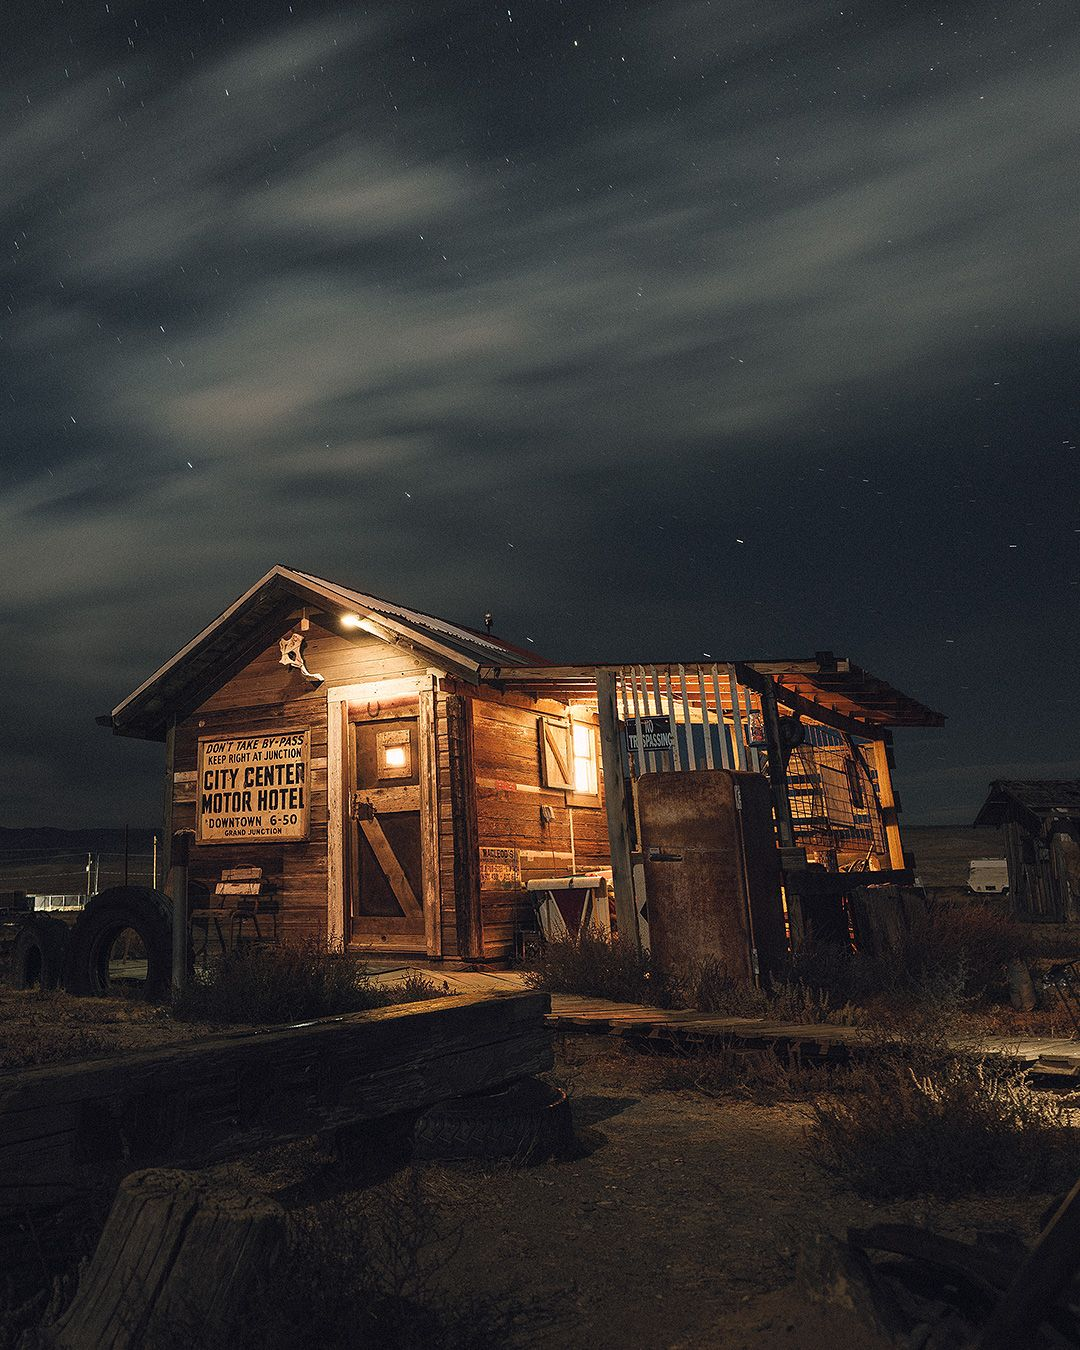 Halloween In Junction City 2020 Ghost Town in Utah in 2020 | Ghost towns, Airbnb travel, Unique